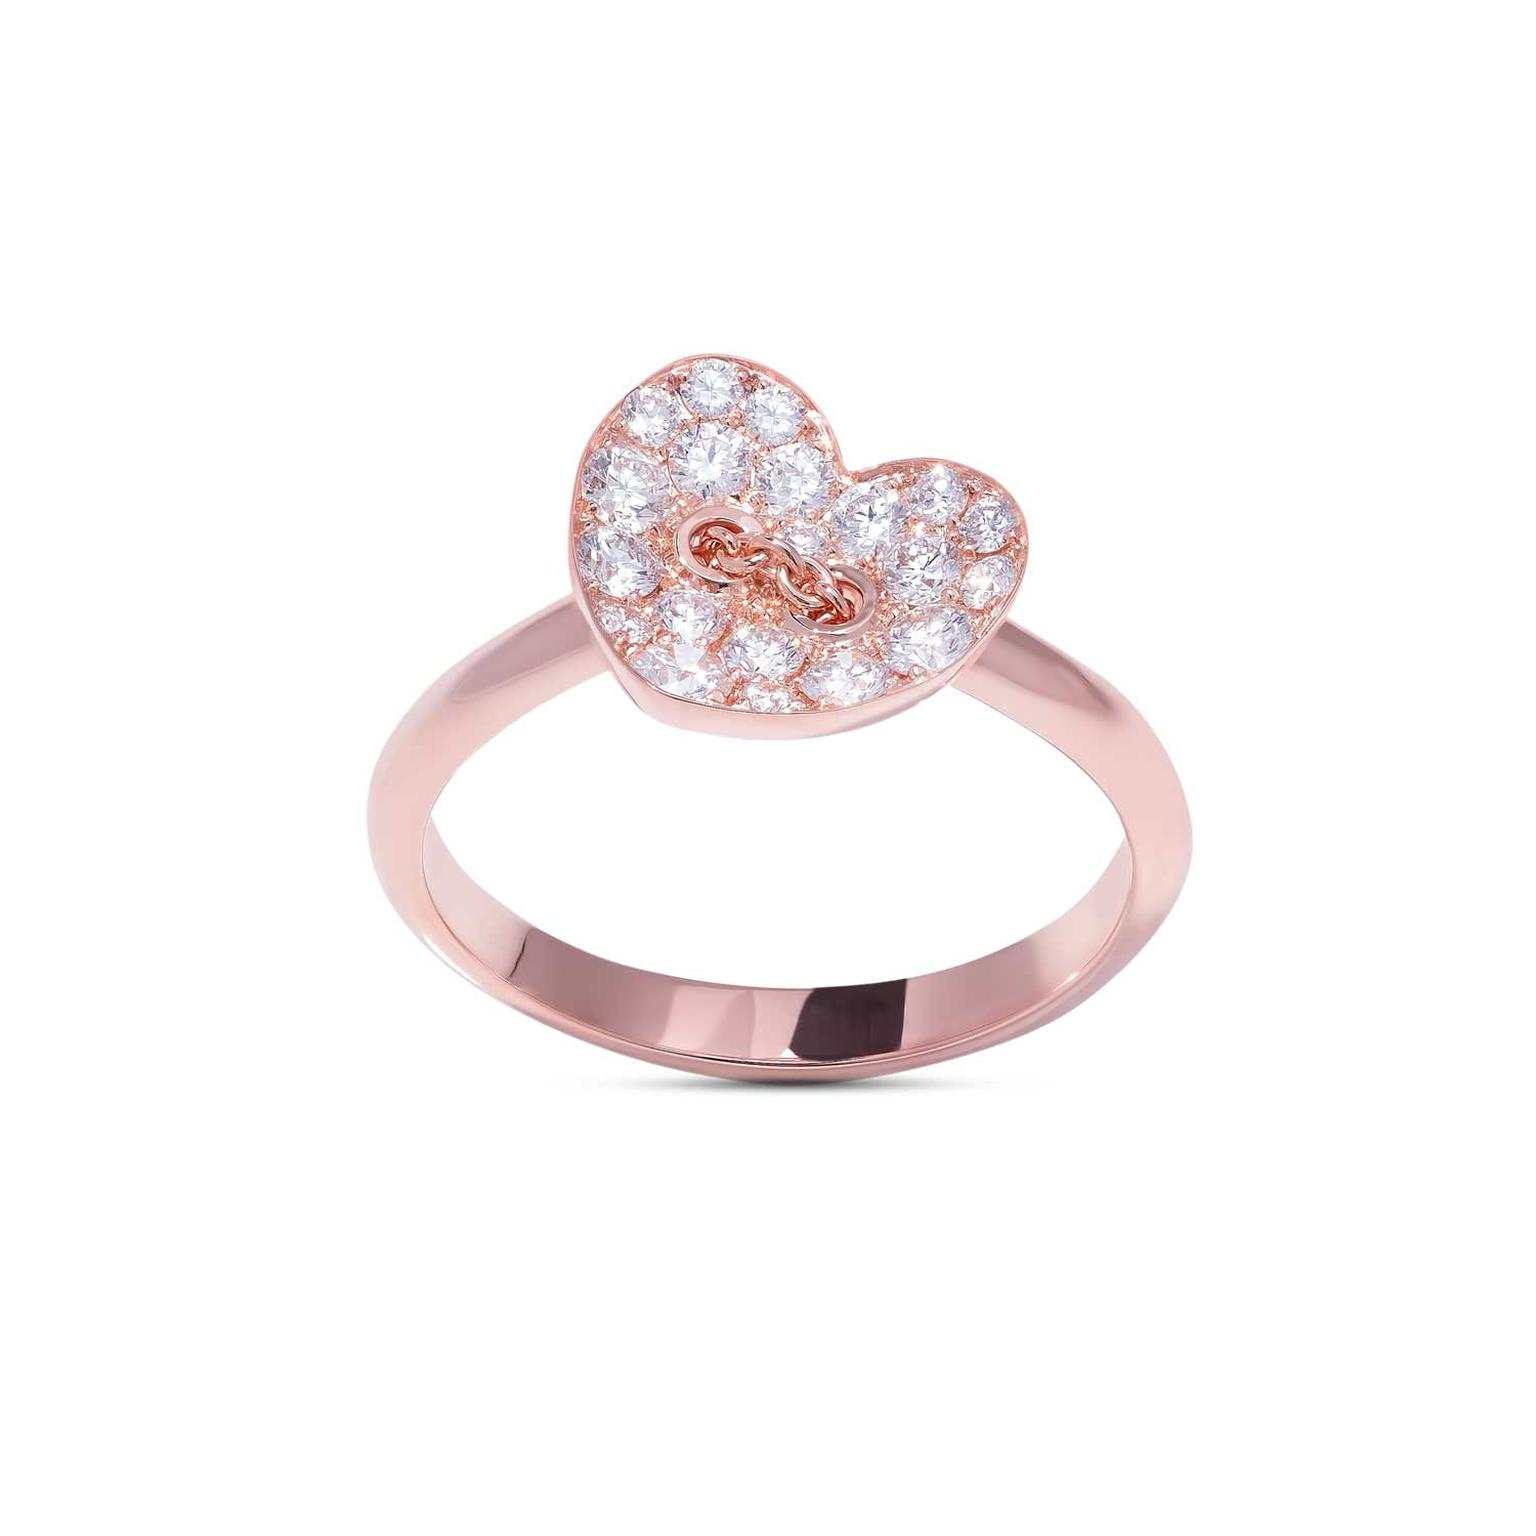 Stenzhorn Chain my Heart diamond ring